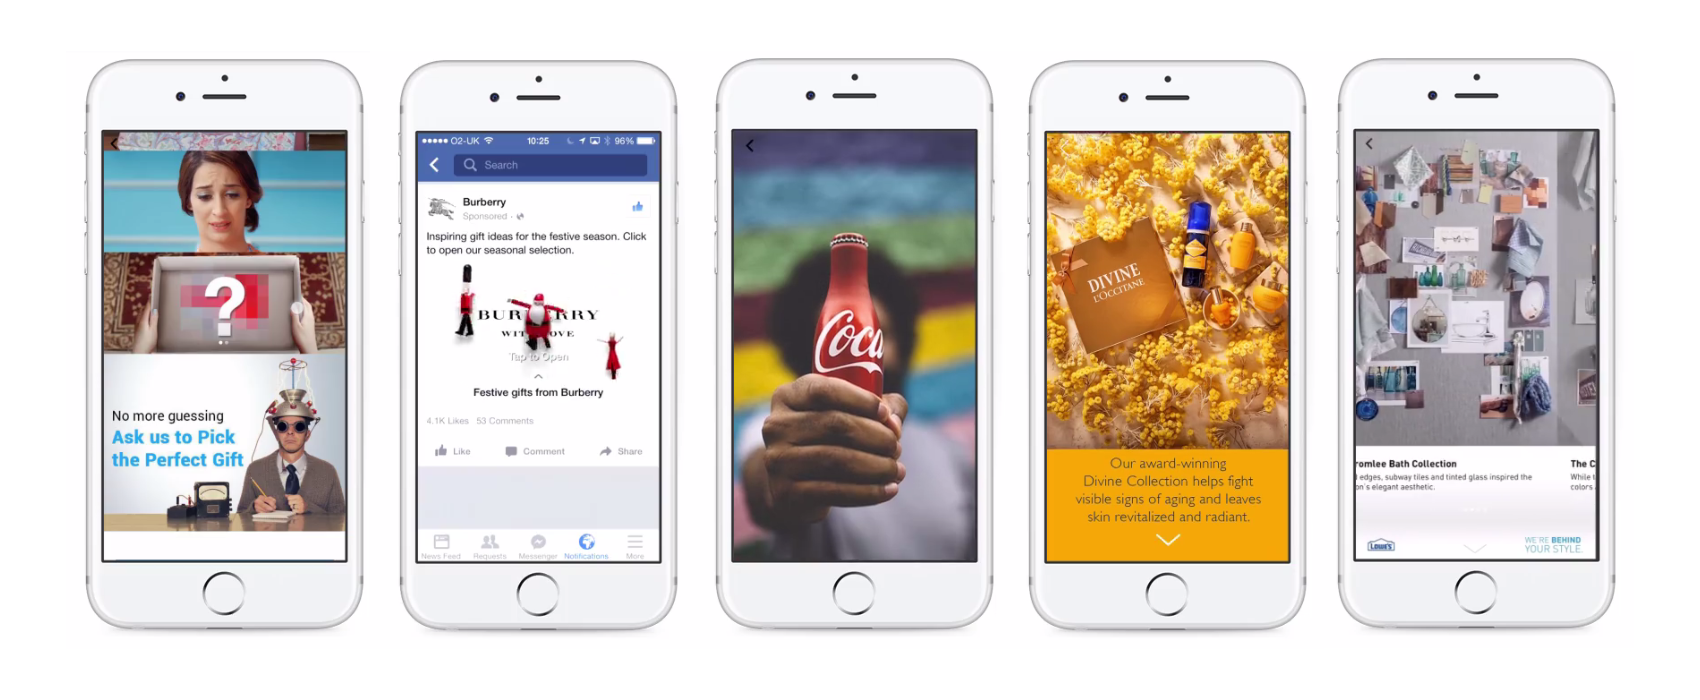 Facebook Canvas Set to Bring Full-screen Rich Media Ads to App